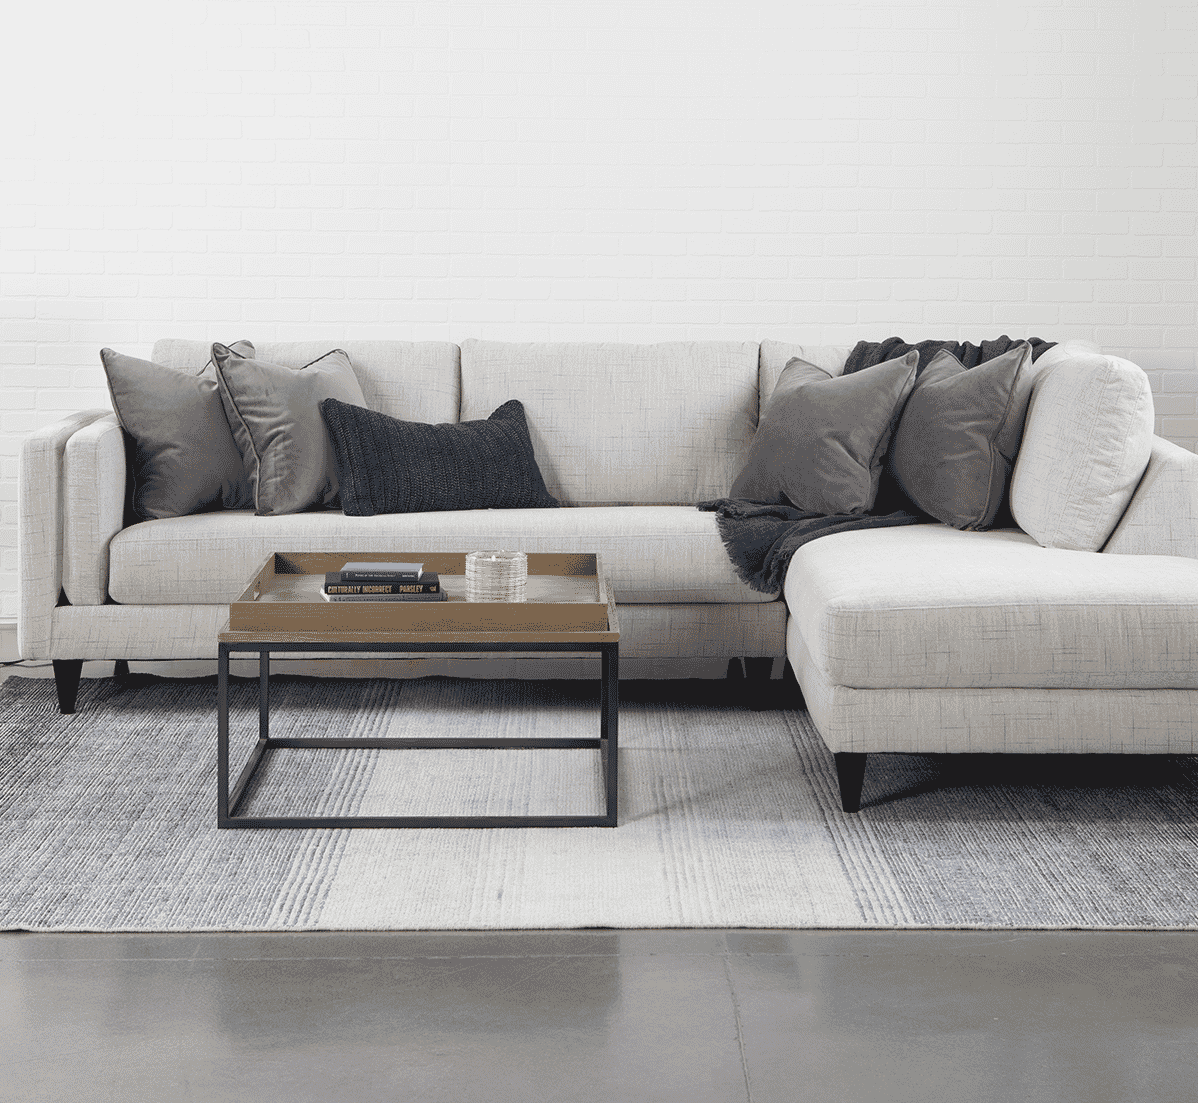 Furniture Store Sales | Current Promotions At August Haven Furniture, Home  Décor, Interior Design Services, Free Consultations. Green Bay, Appleton  And Door ...